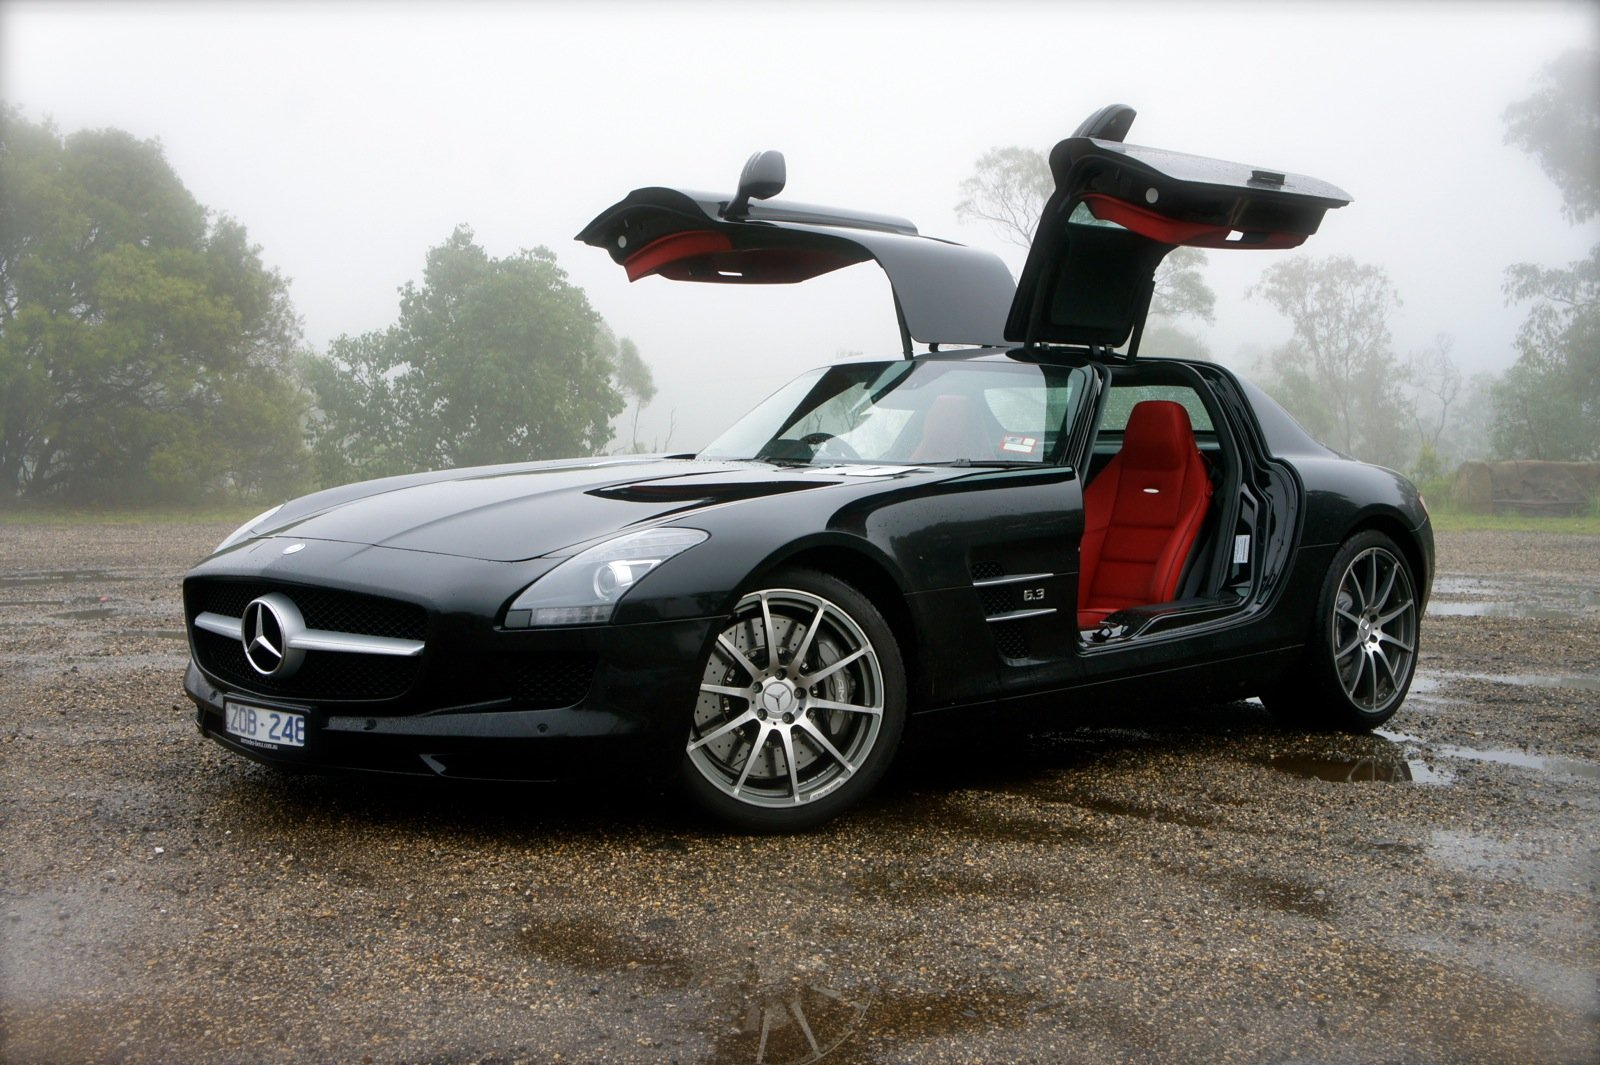 Mercedes benz sls amg review sydney to brisbane road trip for Silverlit mercedes benz sls amg